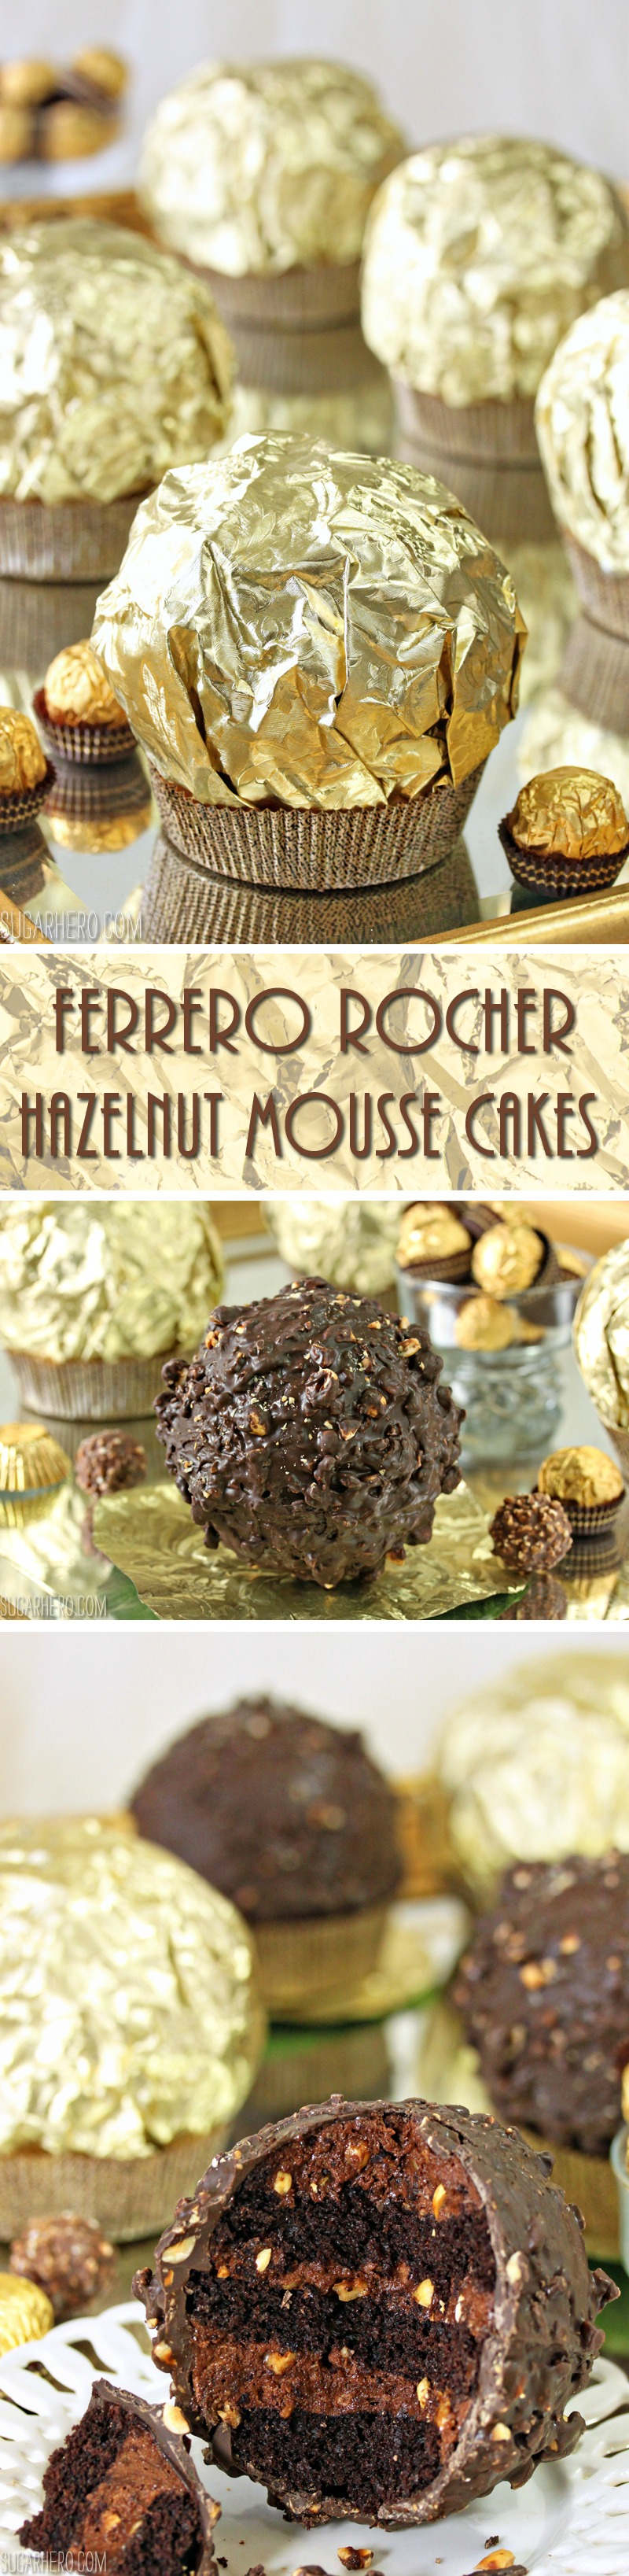 Giant Ferrero Rocher Hazelnut Mousse Cakes - they look like huge Ferrero Rocher candies, but they're filled with layers of chocolate cake and hazelnut mousse!